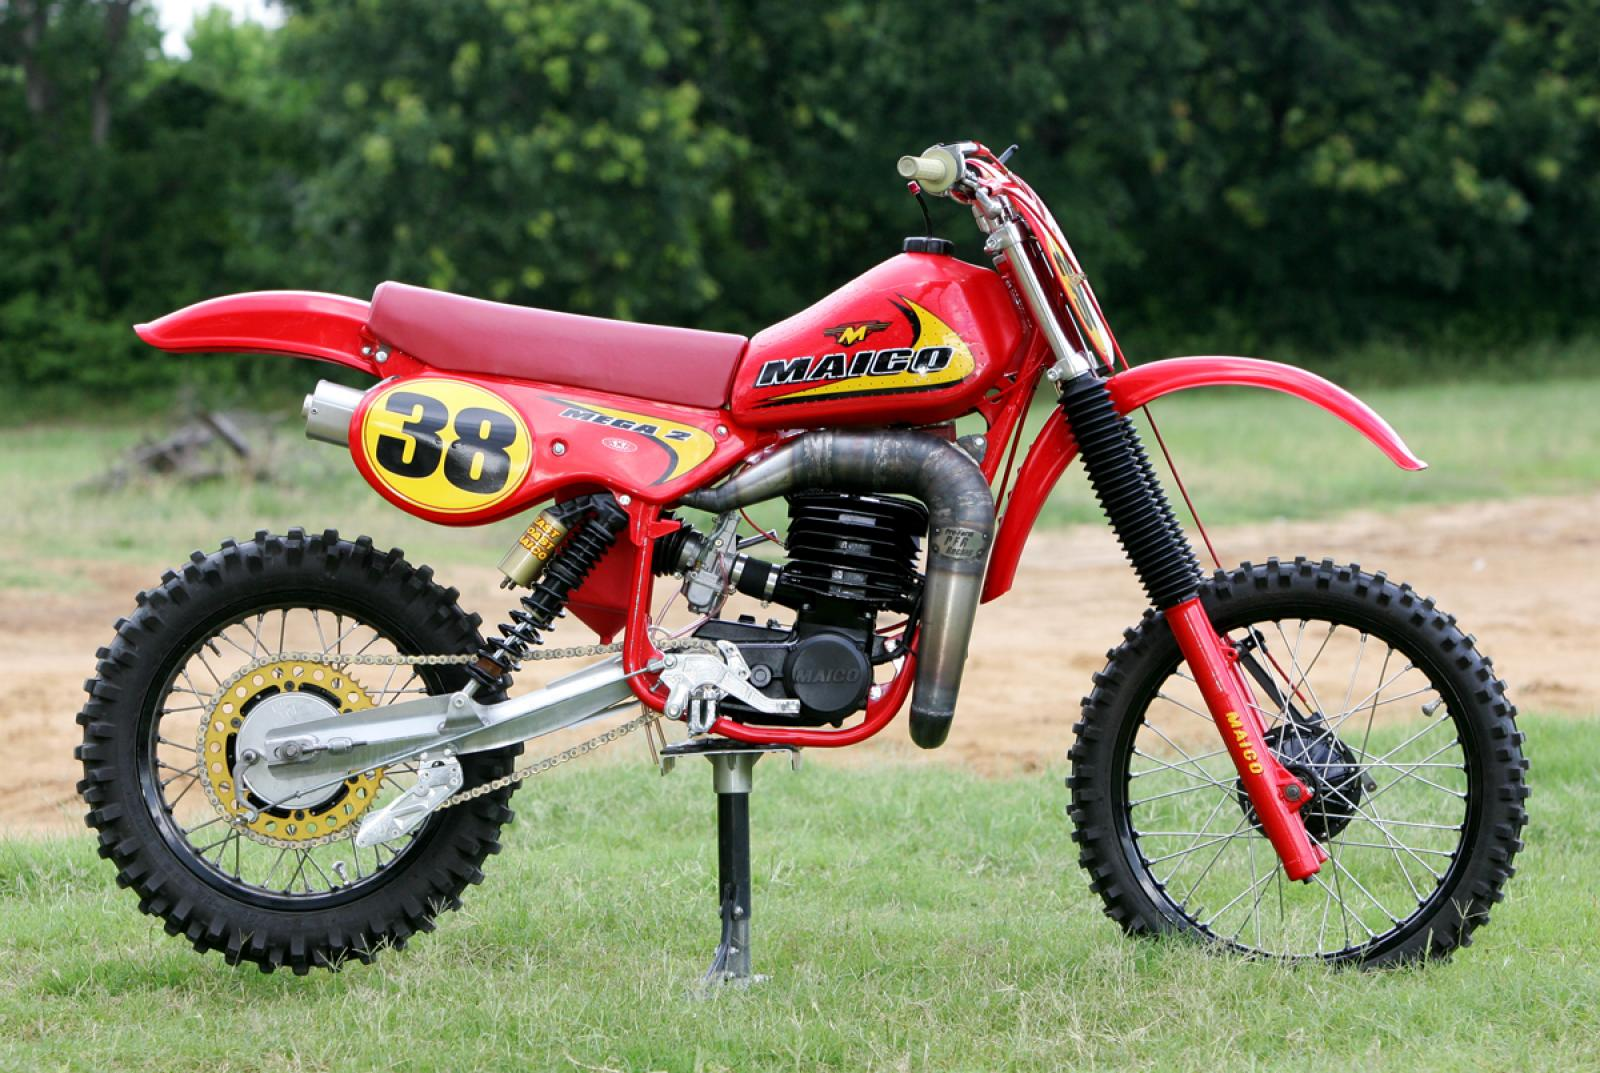 Maico GME 250 1984 images #102393